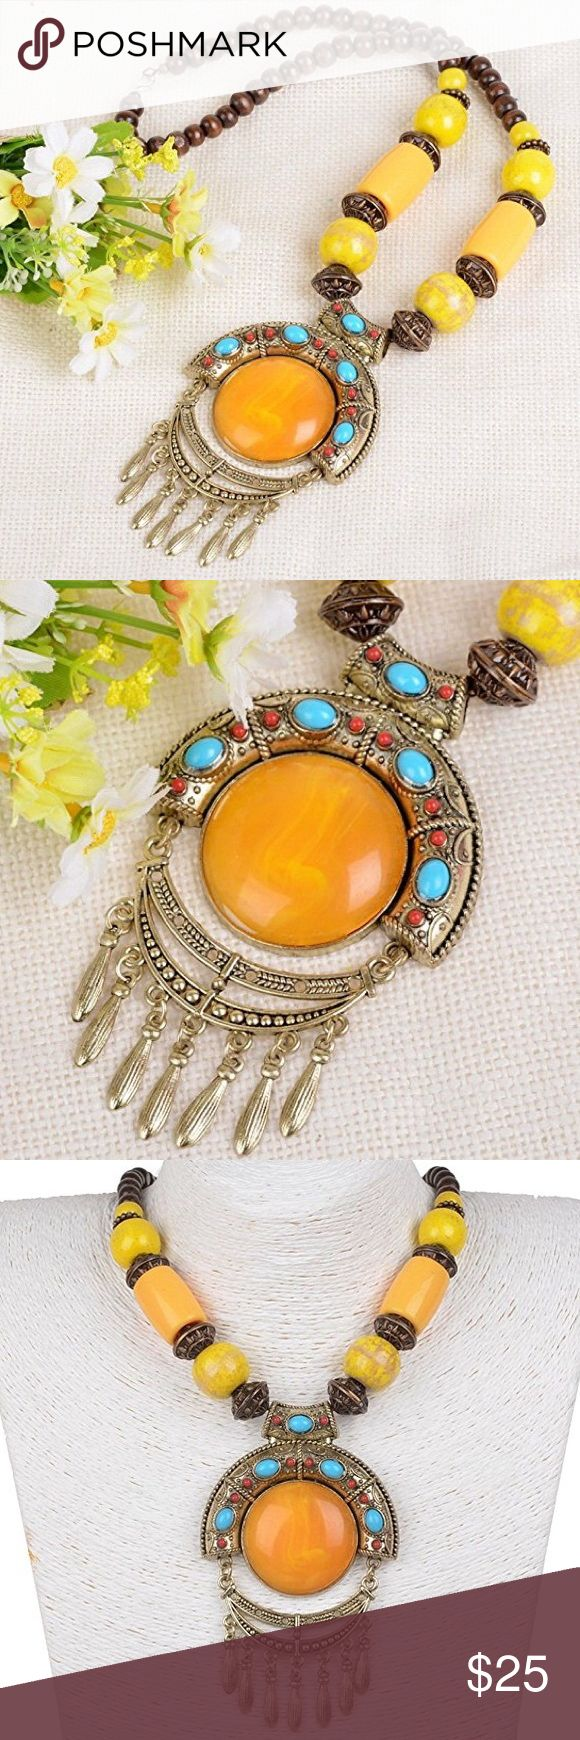 🆕 Chunky Yellow Statement Necklace Brand new. Jewelry Necklaces